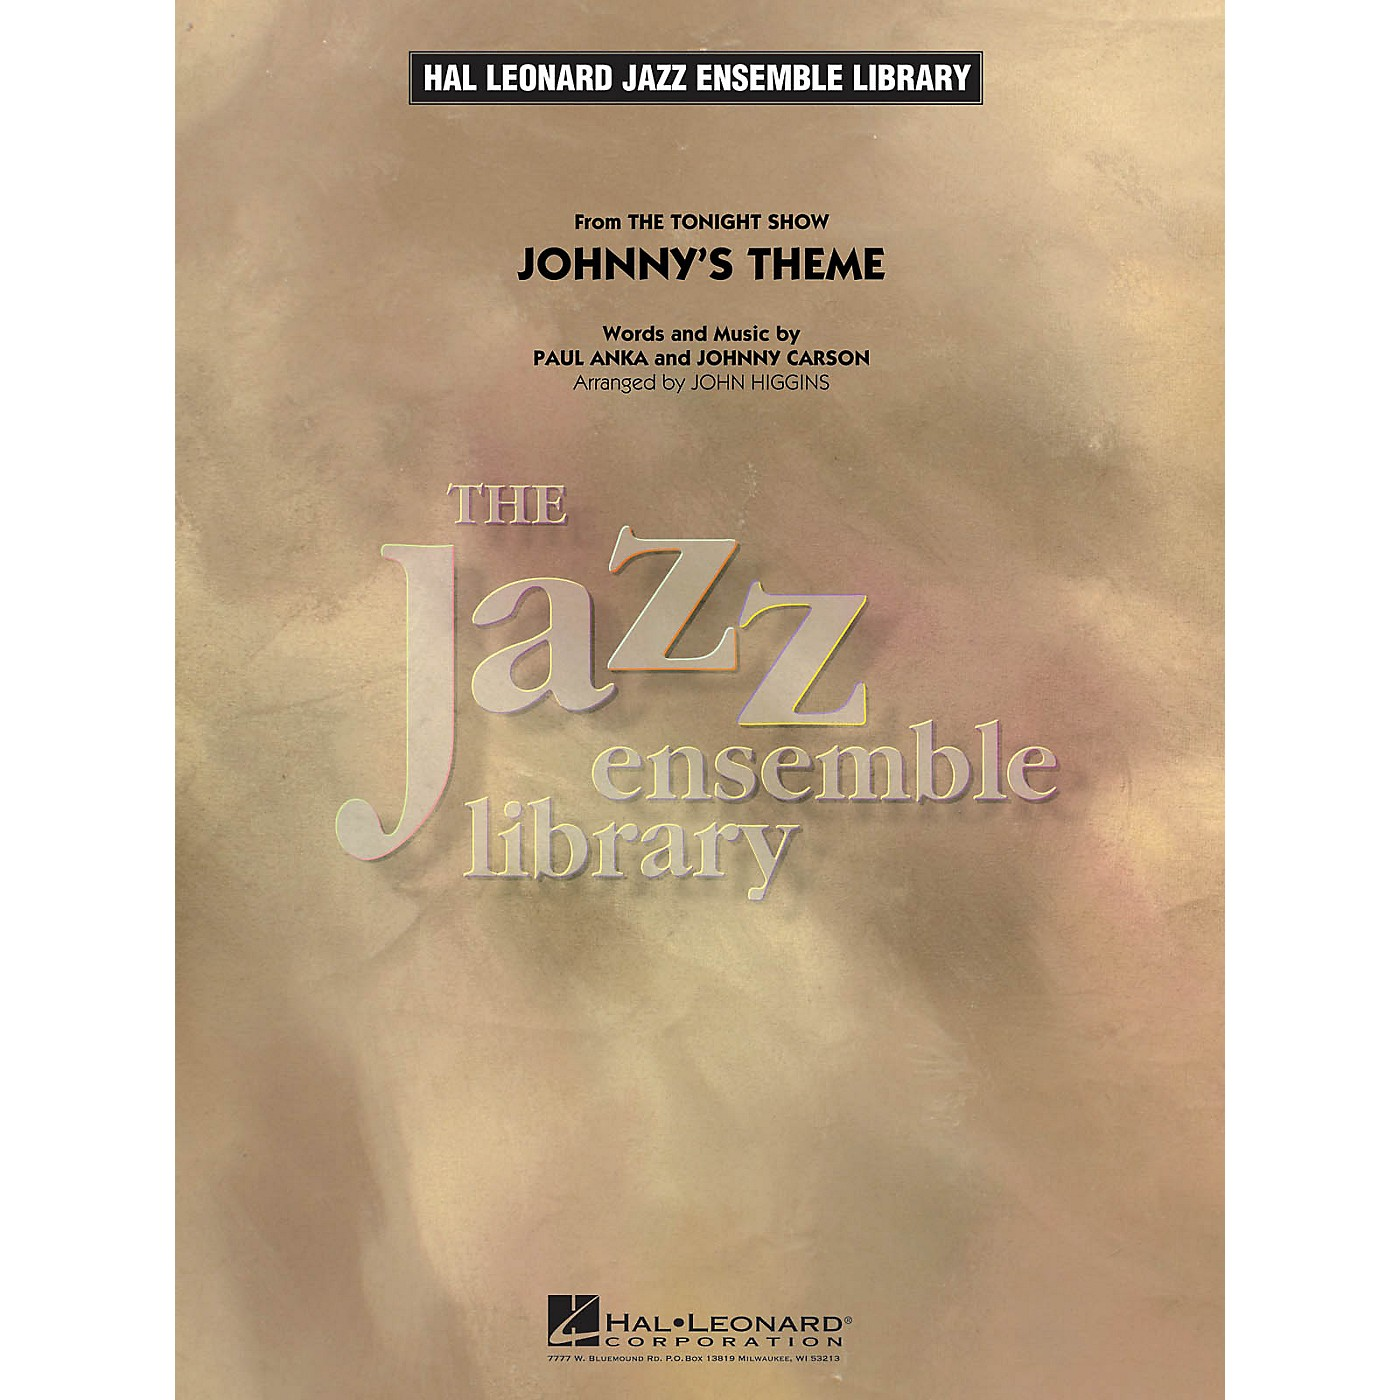 Hal Leonard Johnny's Theme (from The Tonight Show) Jazz Band Level 4 Arranged by John Higgins thumbnail